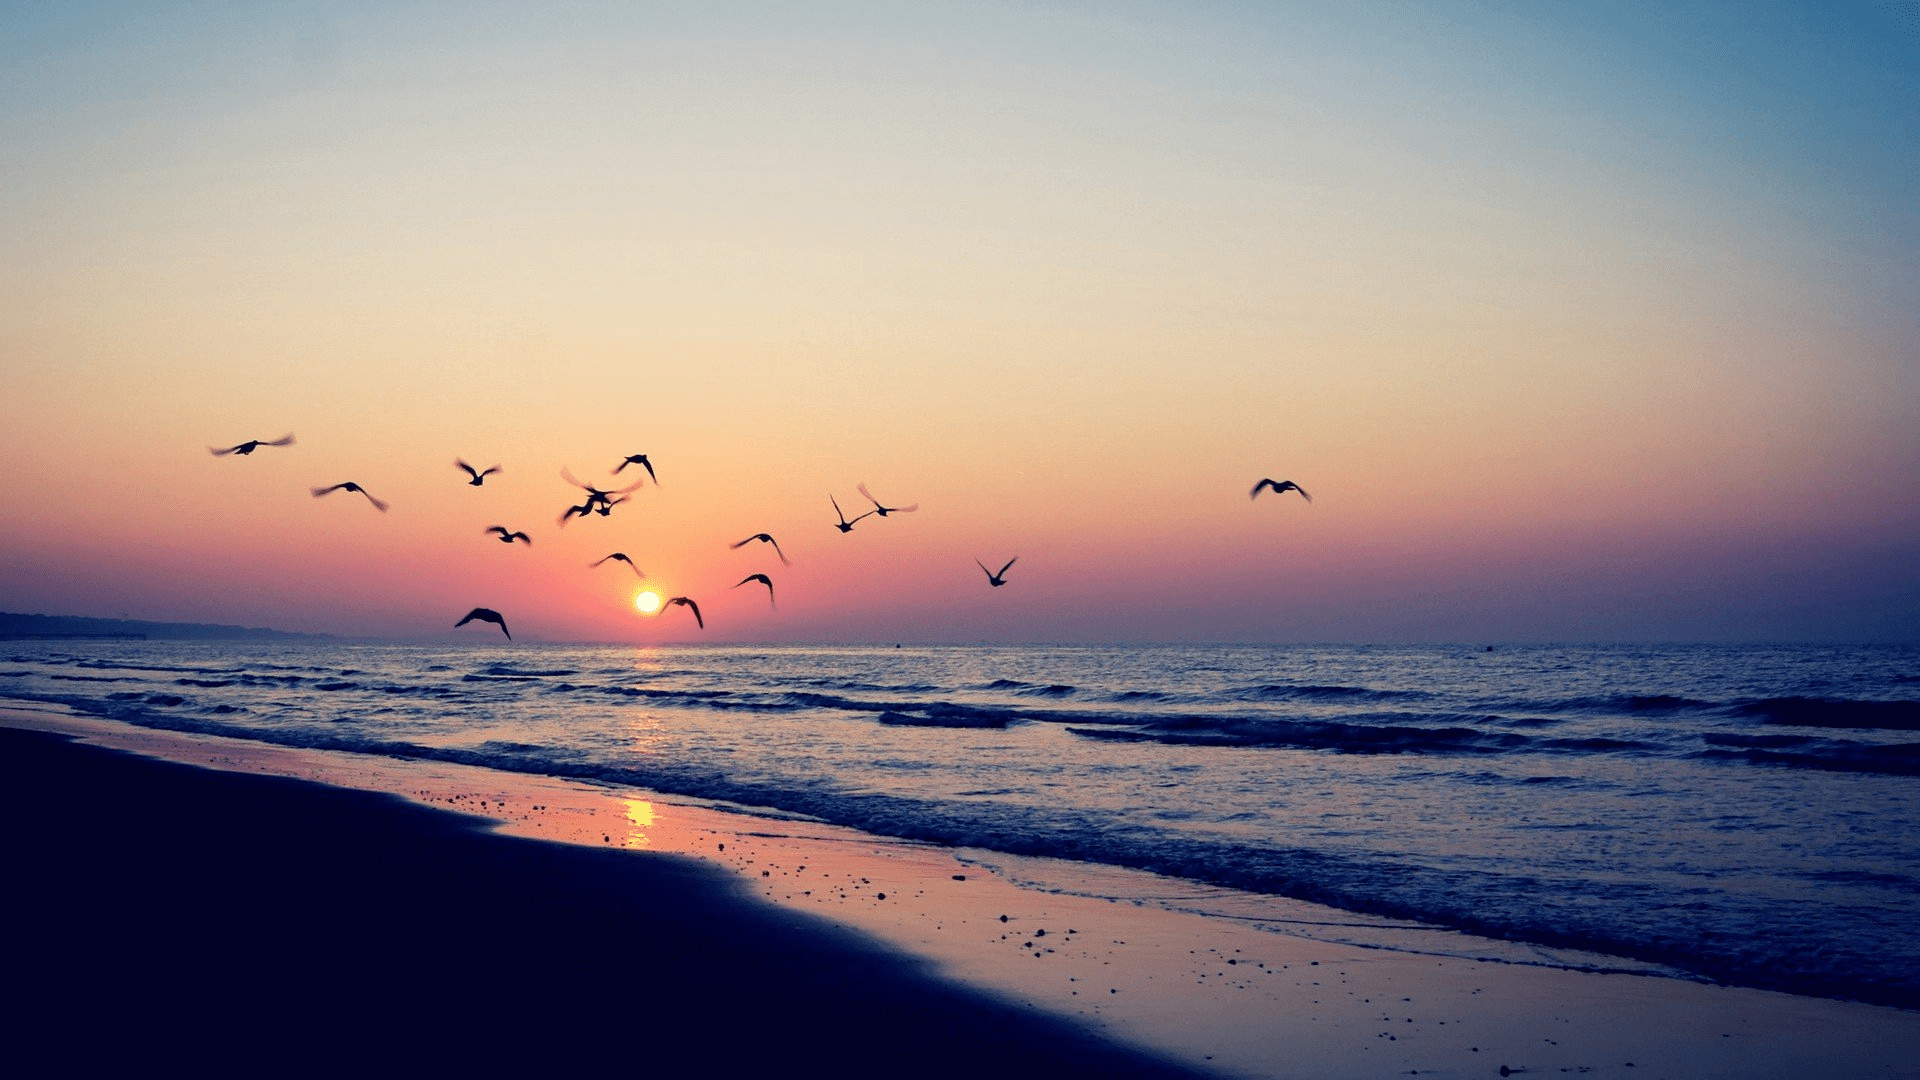 Aesthetic Beach Wallpaper Posted By Ryan Simpson